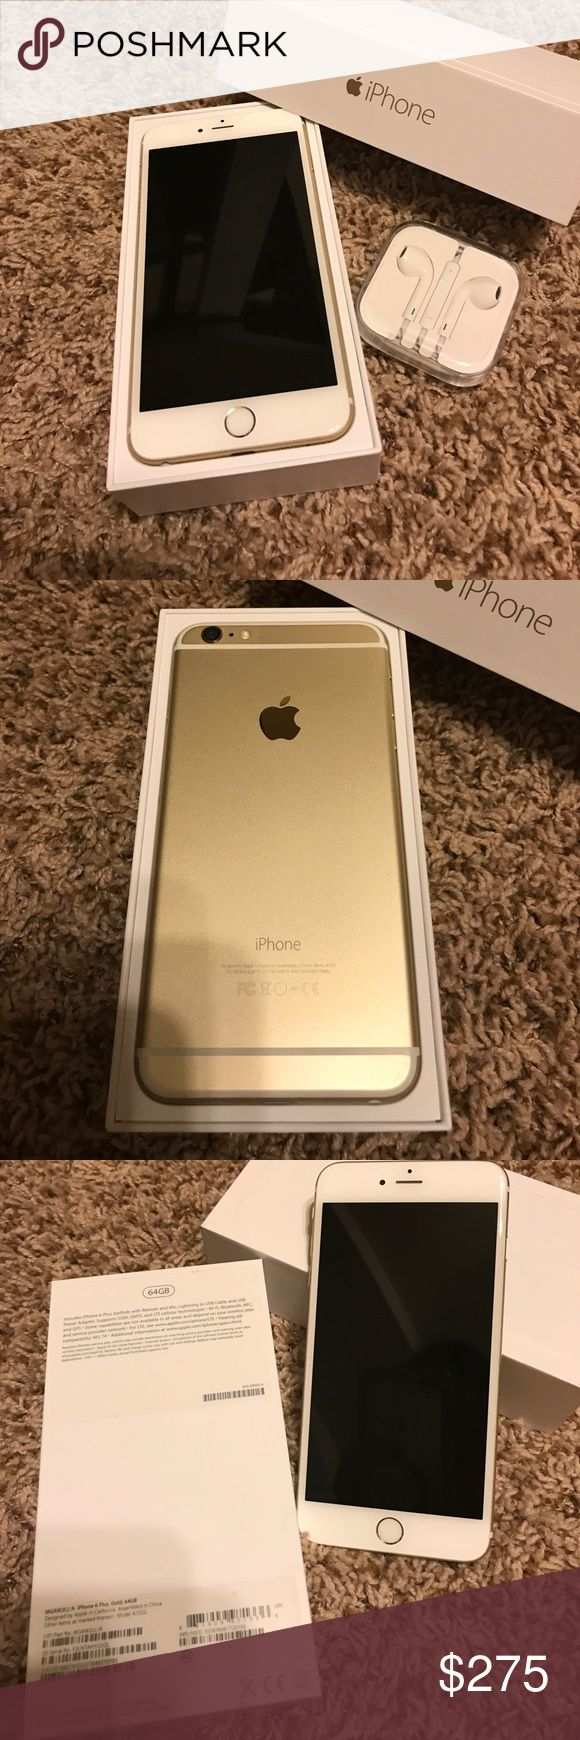 EXCELLENT condition 64G iPhone 6 Plus. EXCELLENT used condition 64G iPhone 6 Plus. Box and brand new headphones included. The original paperwork is also in the box. This phone has always been kept in a case and always had a screen protector on it! This phone looks flawless and brand new! The only reason I am getting rid of it is because I upgraded to the iPhone 7 plus 256G. This phone has a TON of life left in it! :) Apple Other